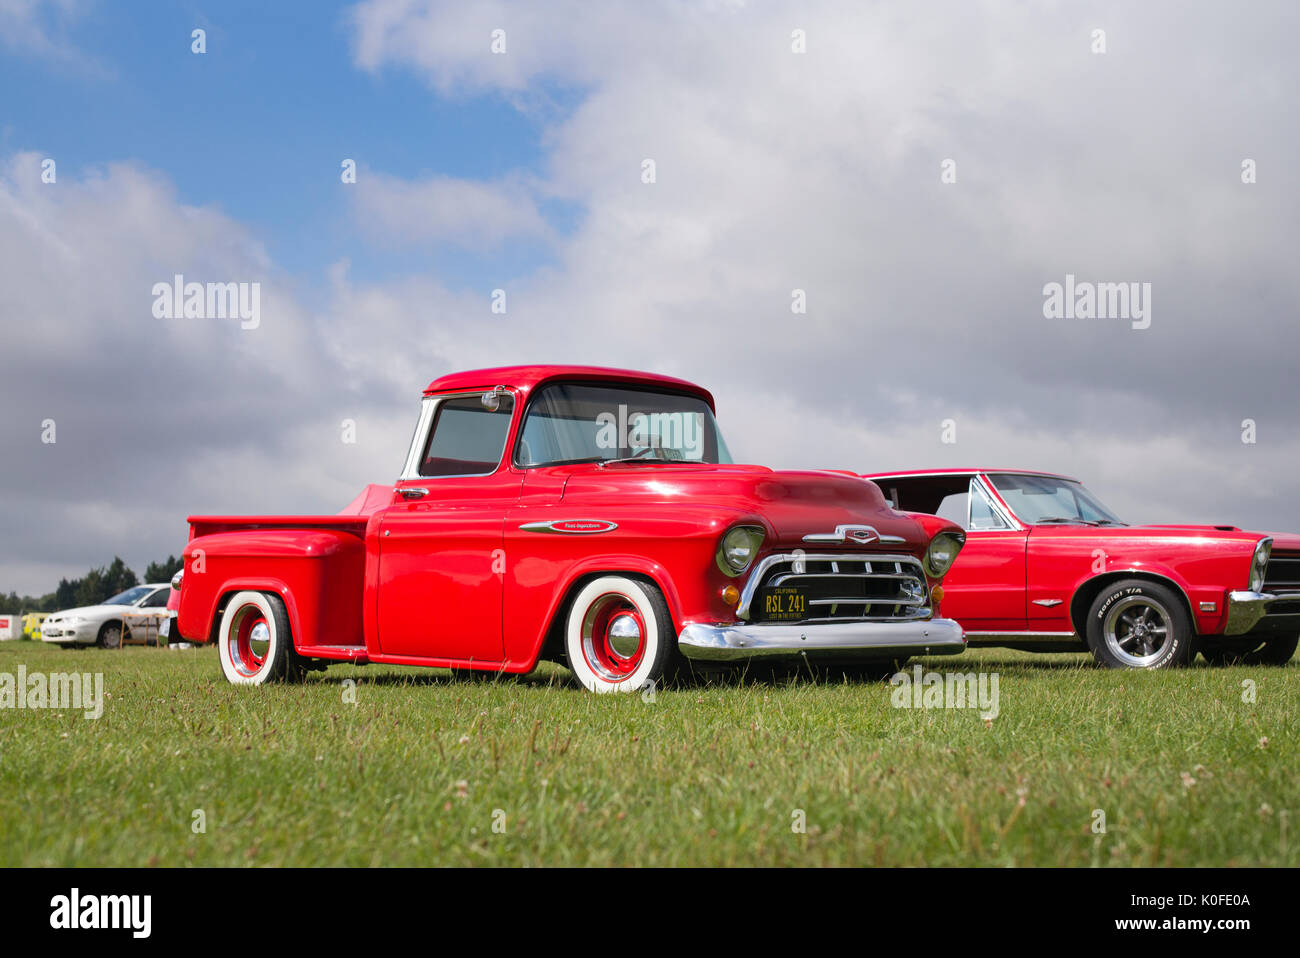 Fifties American Truck Stock Photos 1949 Chevy Pickup Interior 1957 Red Chevrolet Pick Up At An Car Show Essex Uk